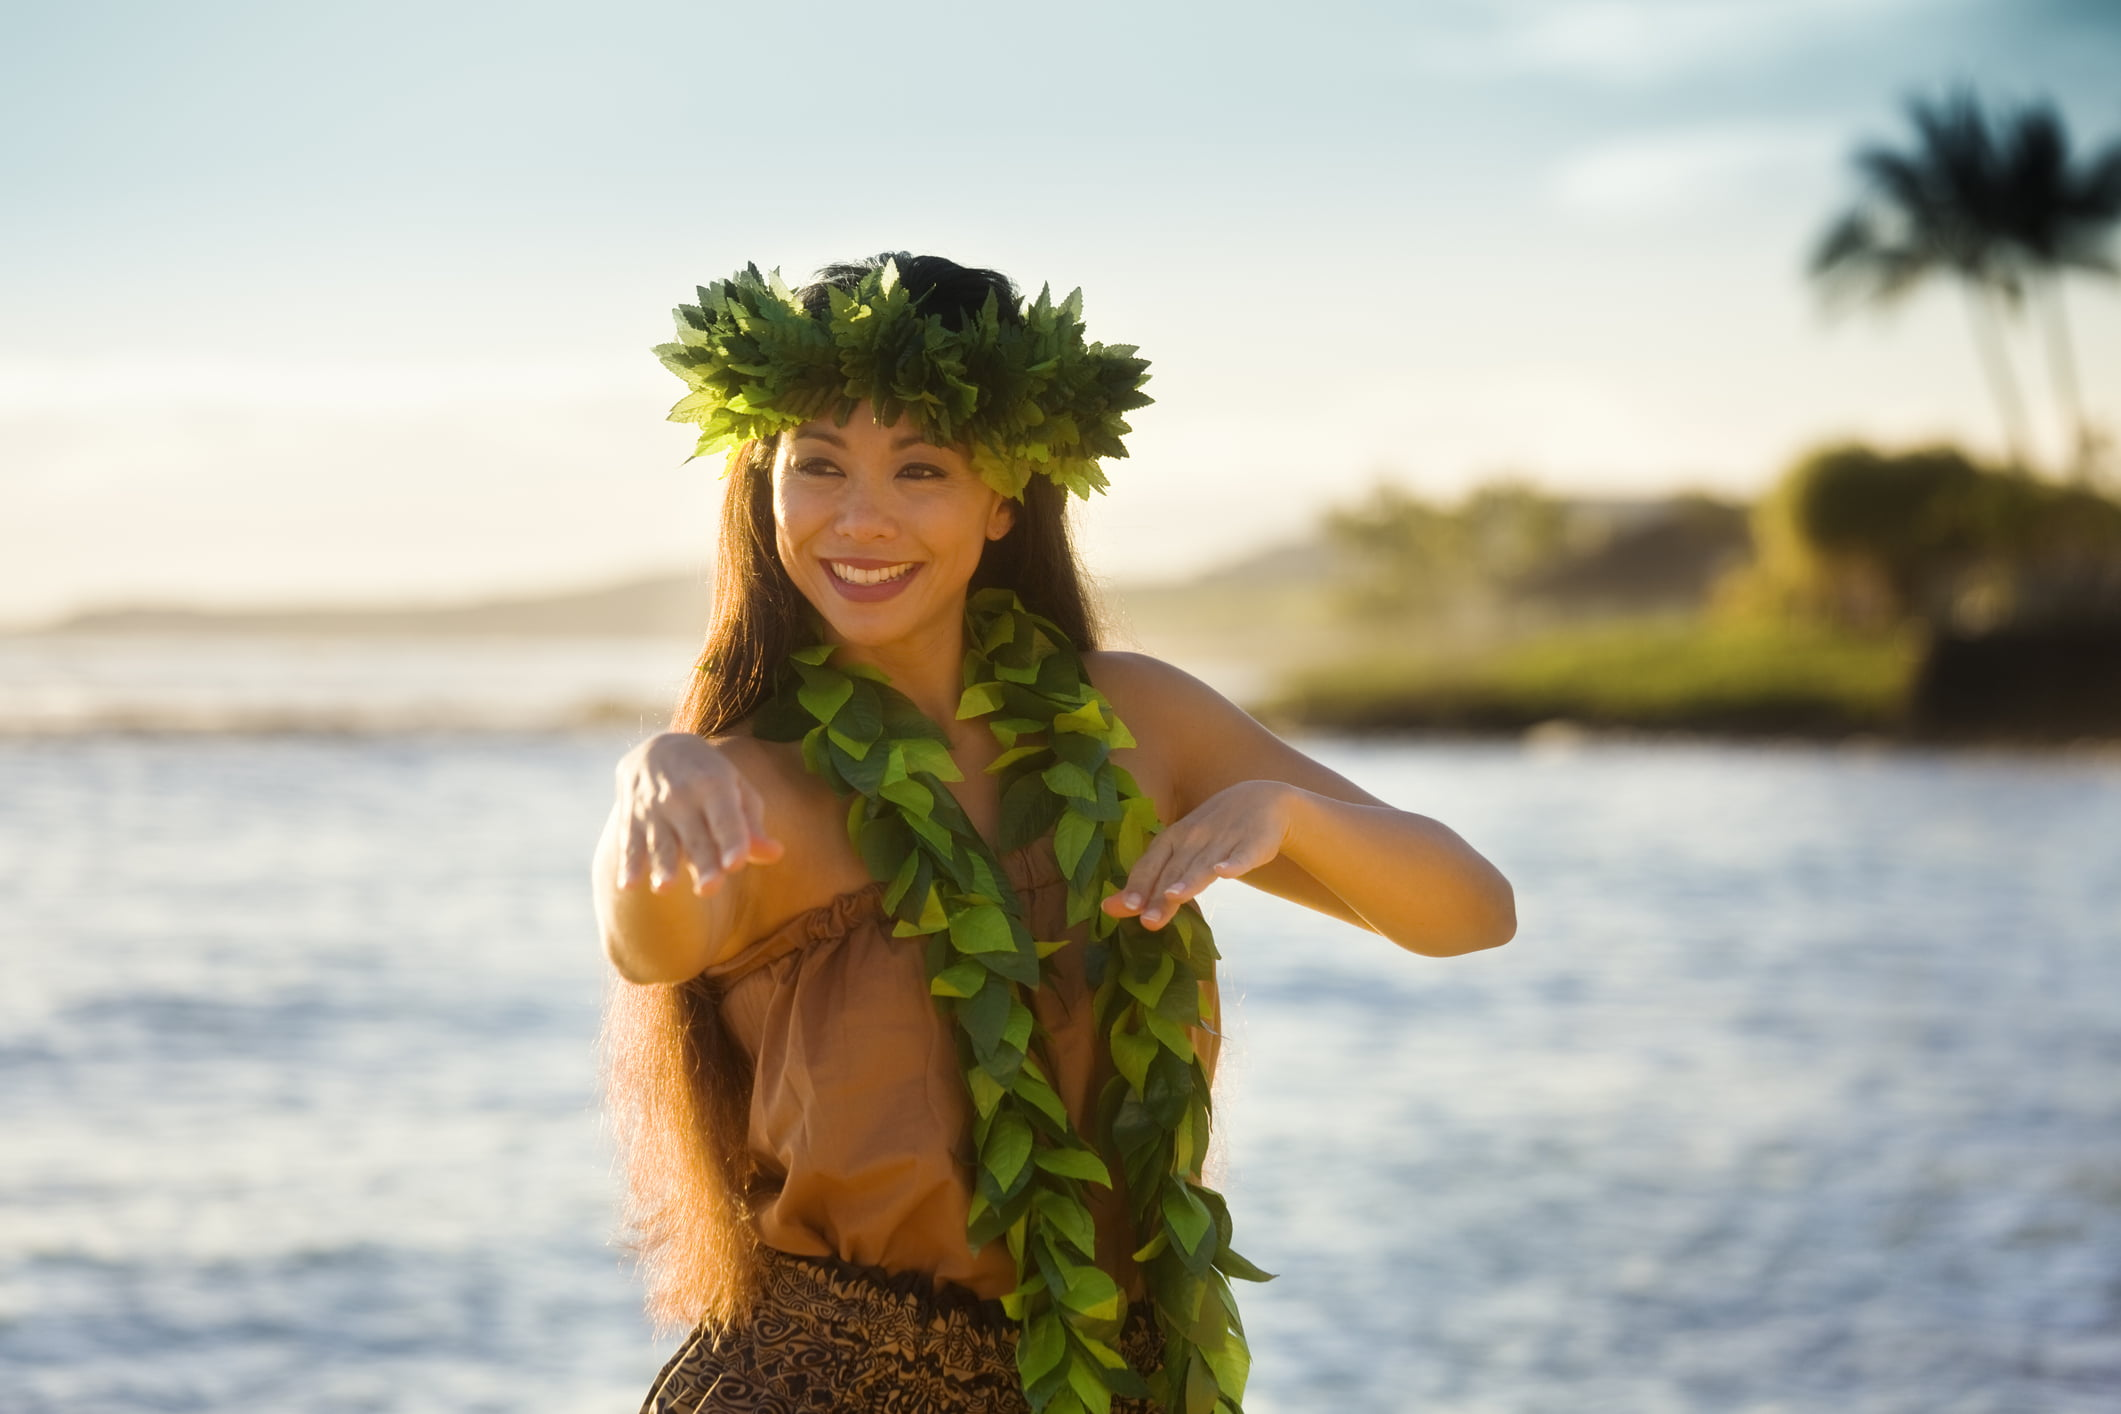 hawaiian dancer with green leaf lei